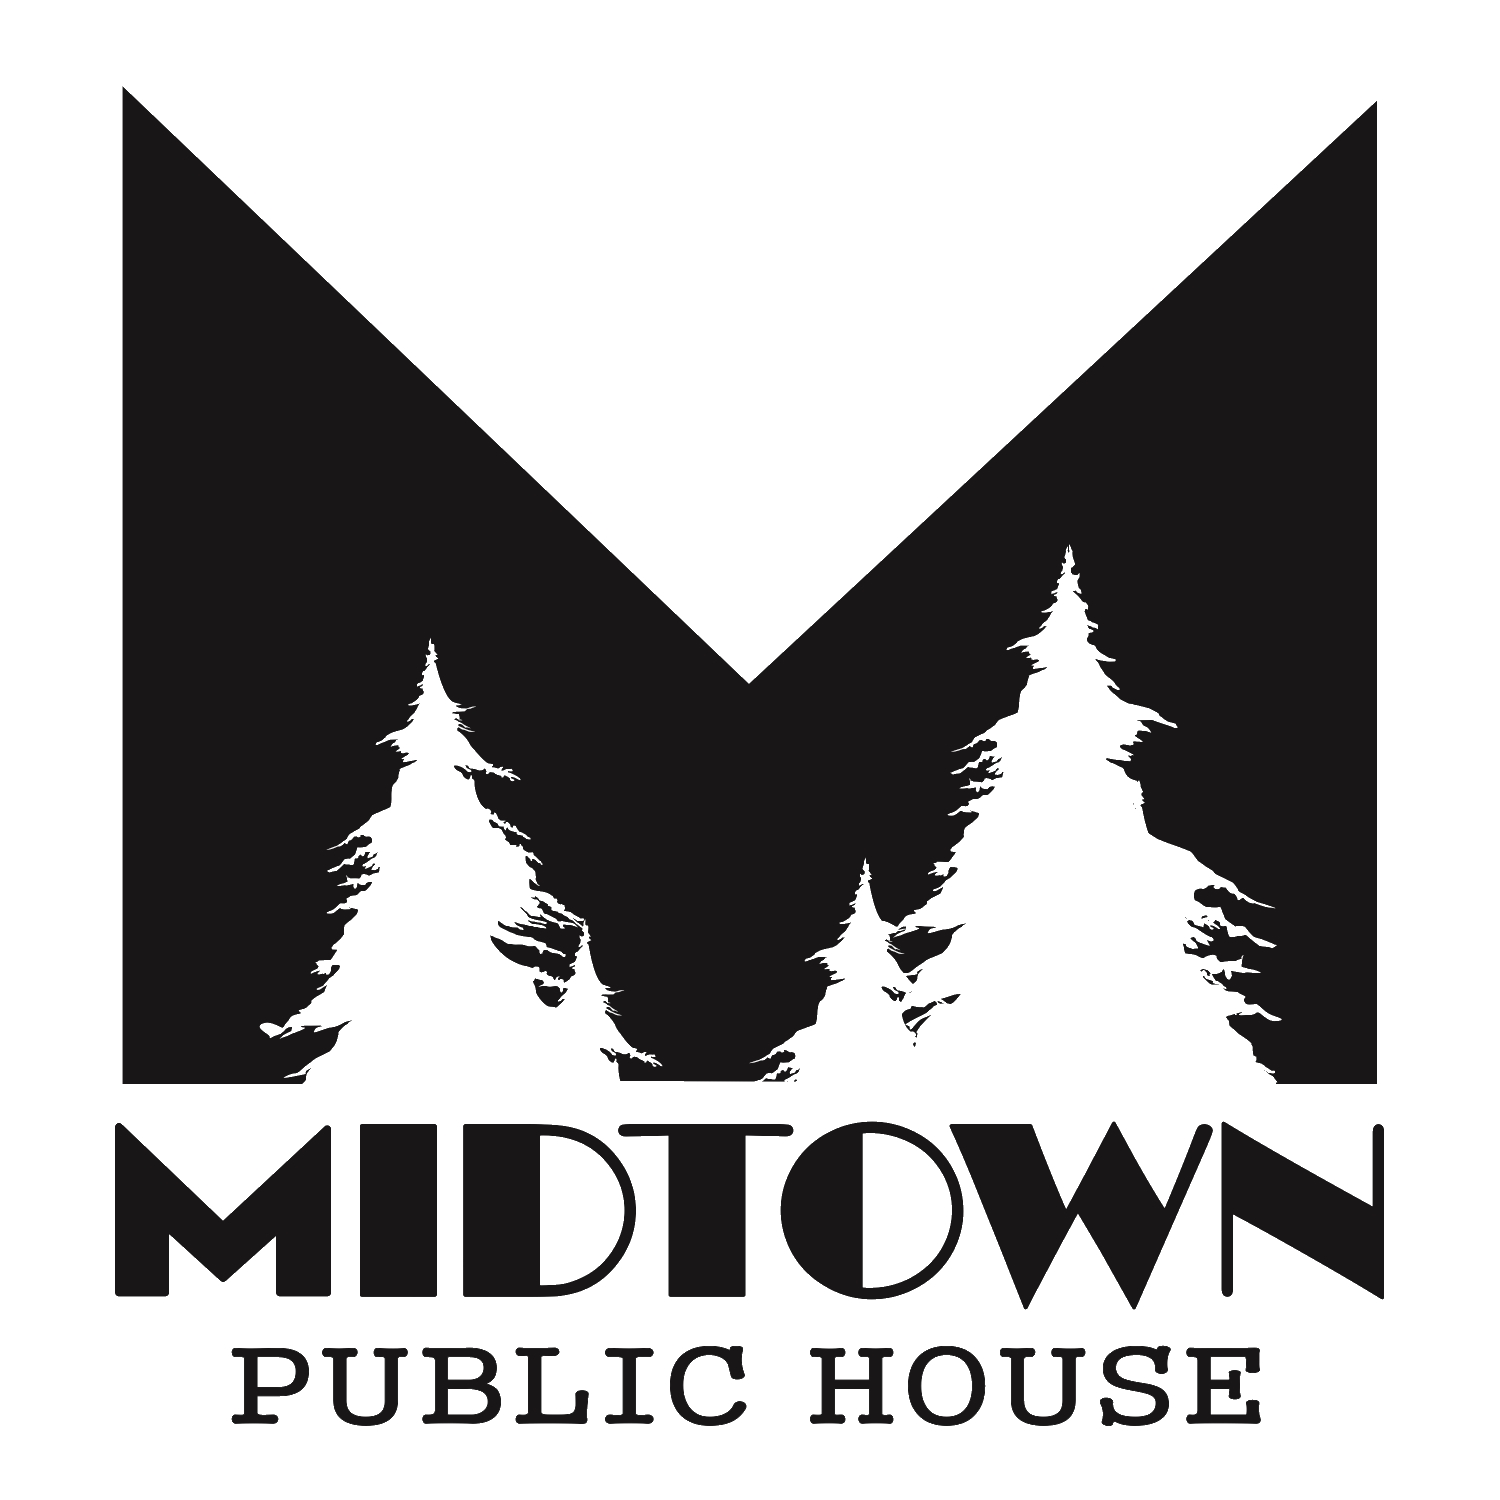 Midtown Public House